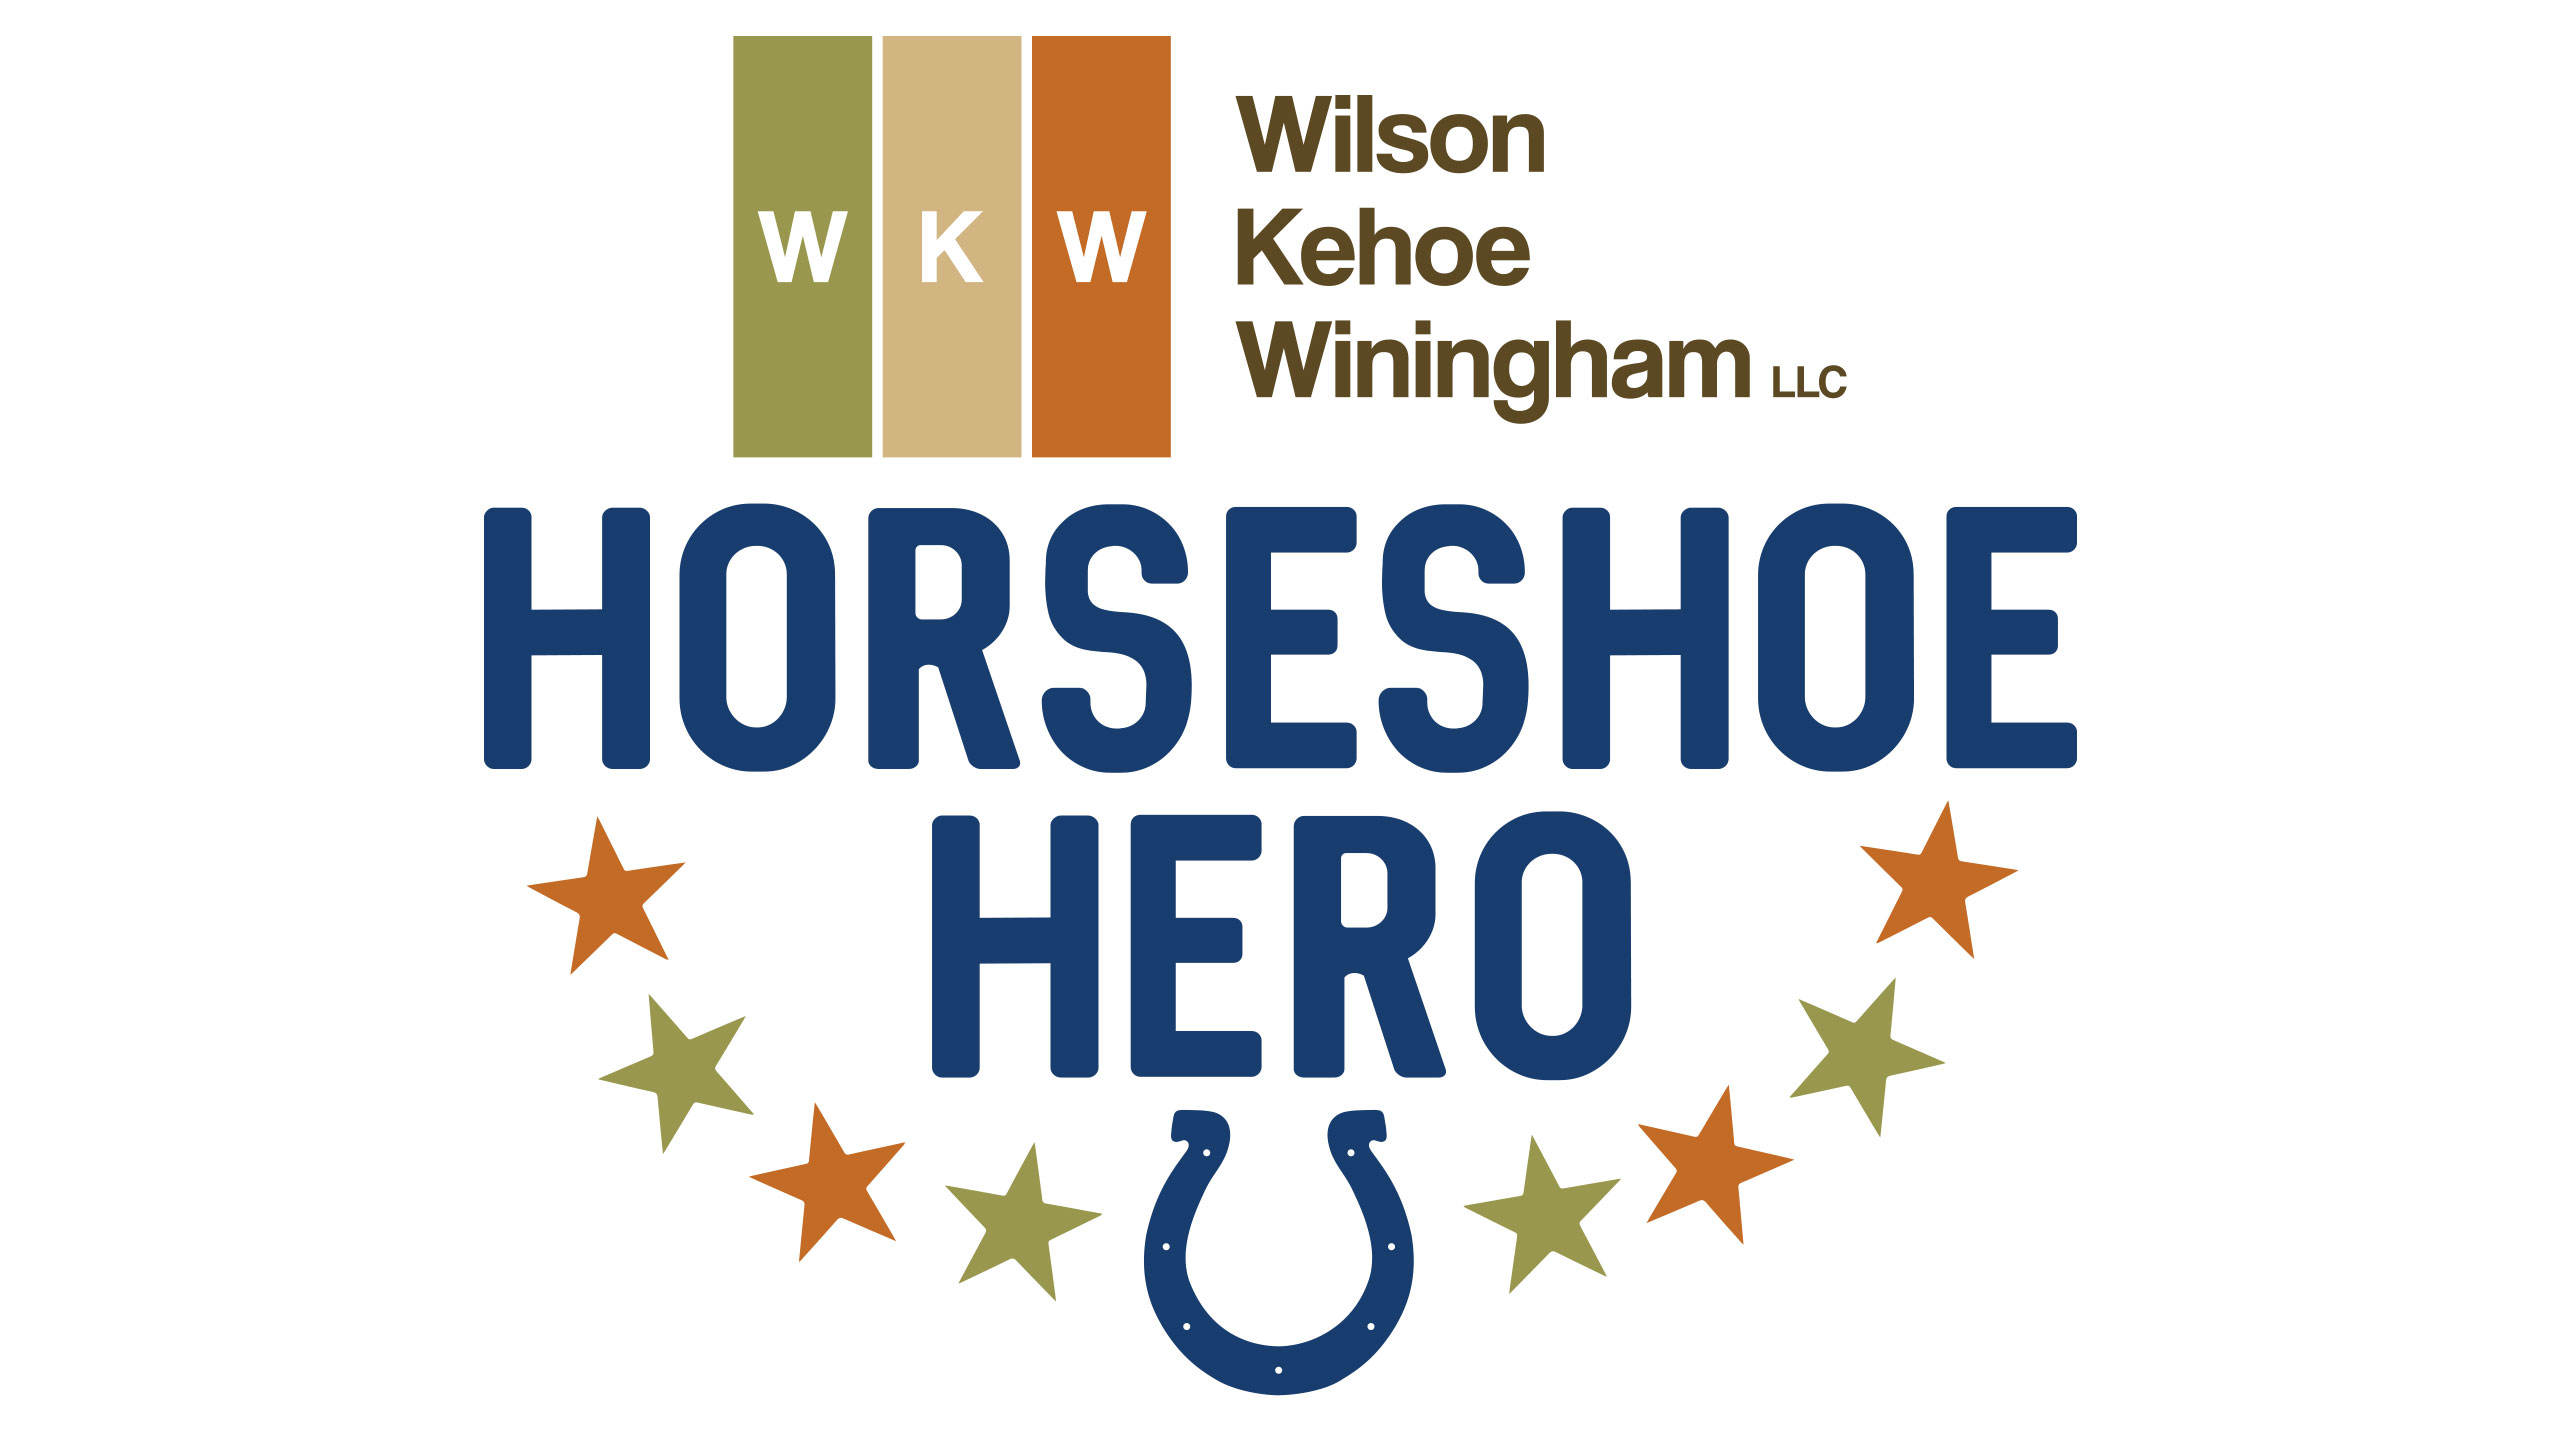 Horseshoe Hero